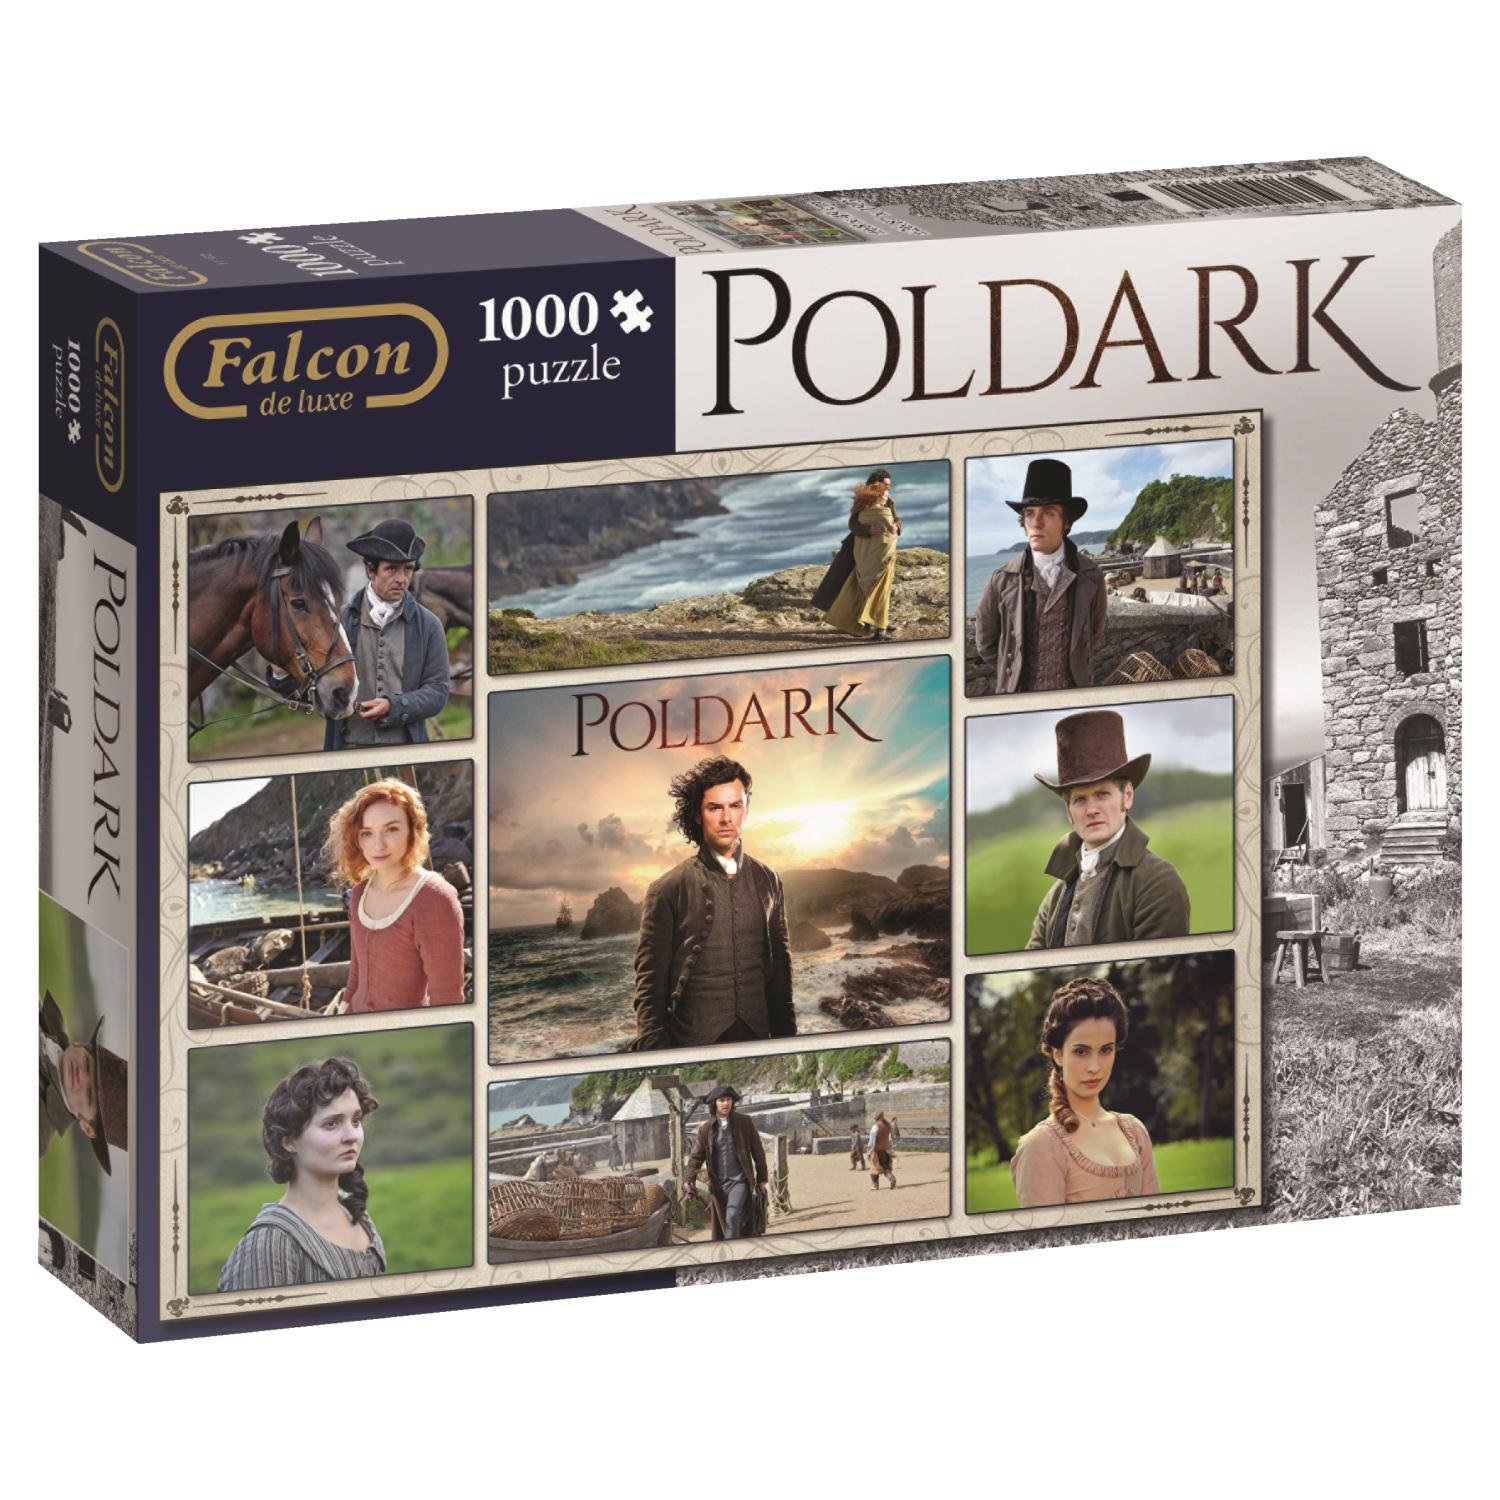 Poldark Jigsaw Puzzle (1000 Pieces)